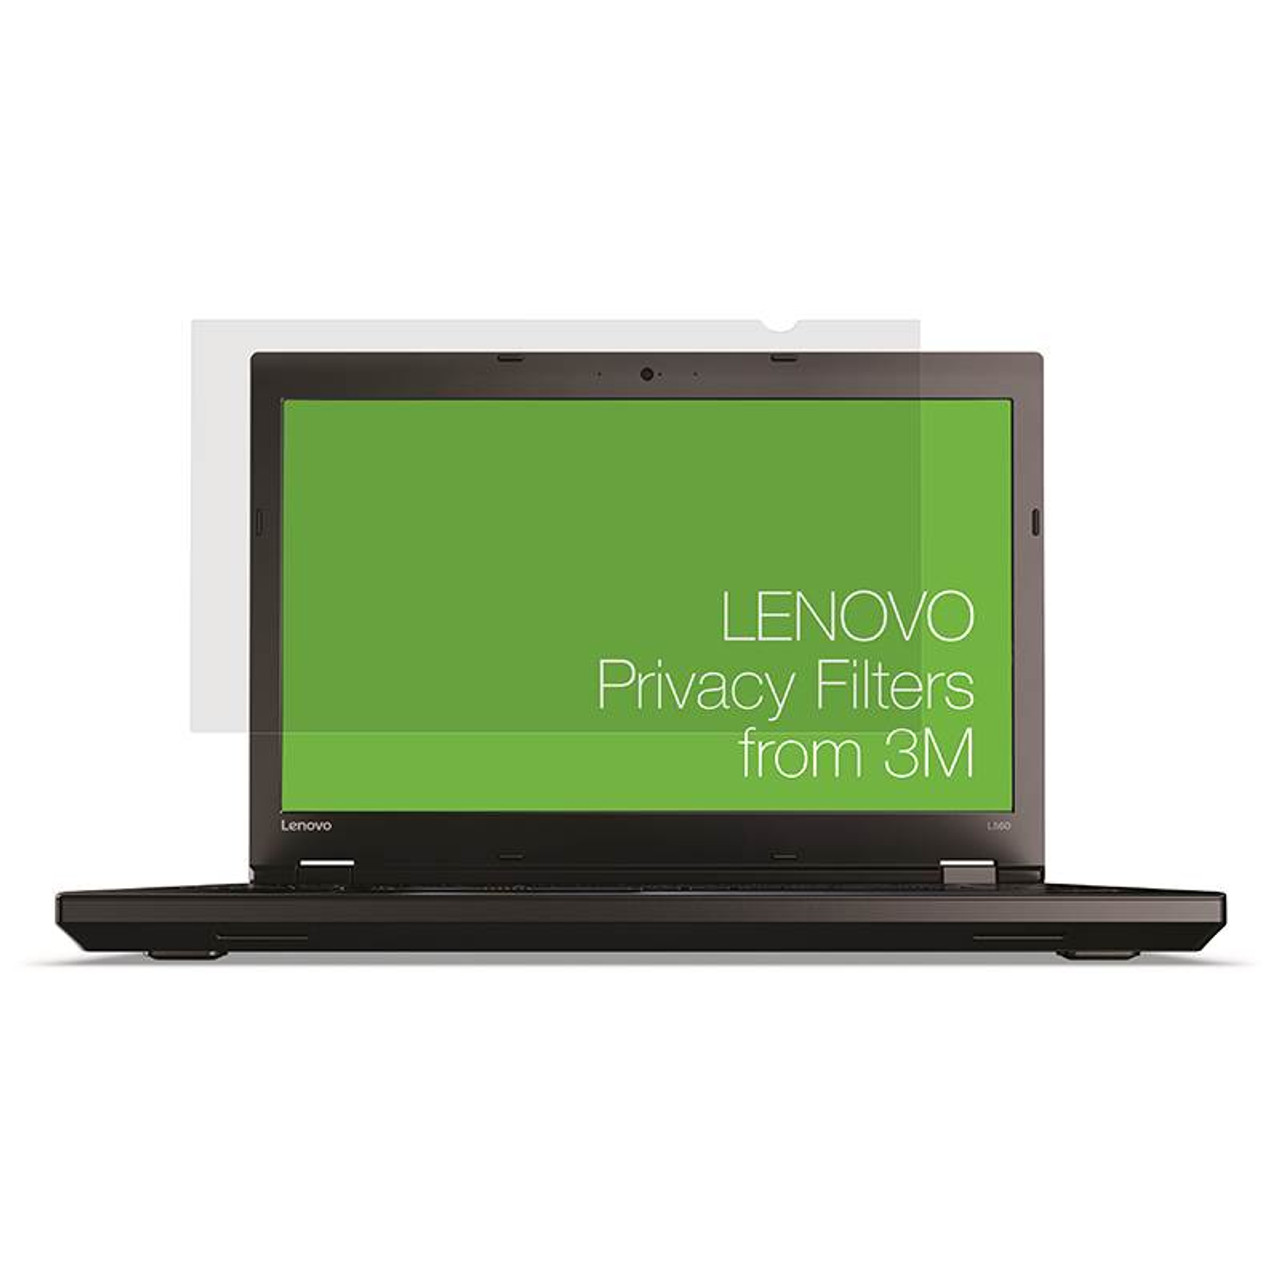 Image for Lenovo 14.0W9 Laptop Privacy Filter from 3M CX Computer Superstore